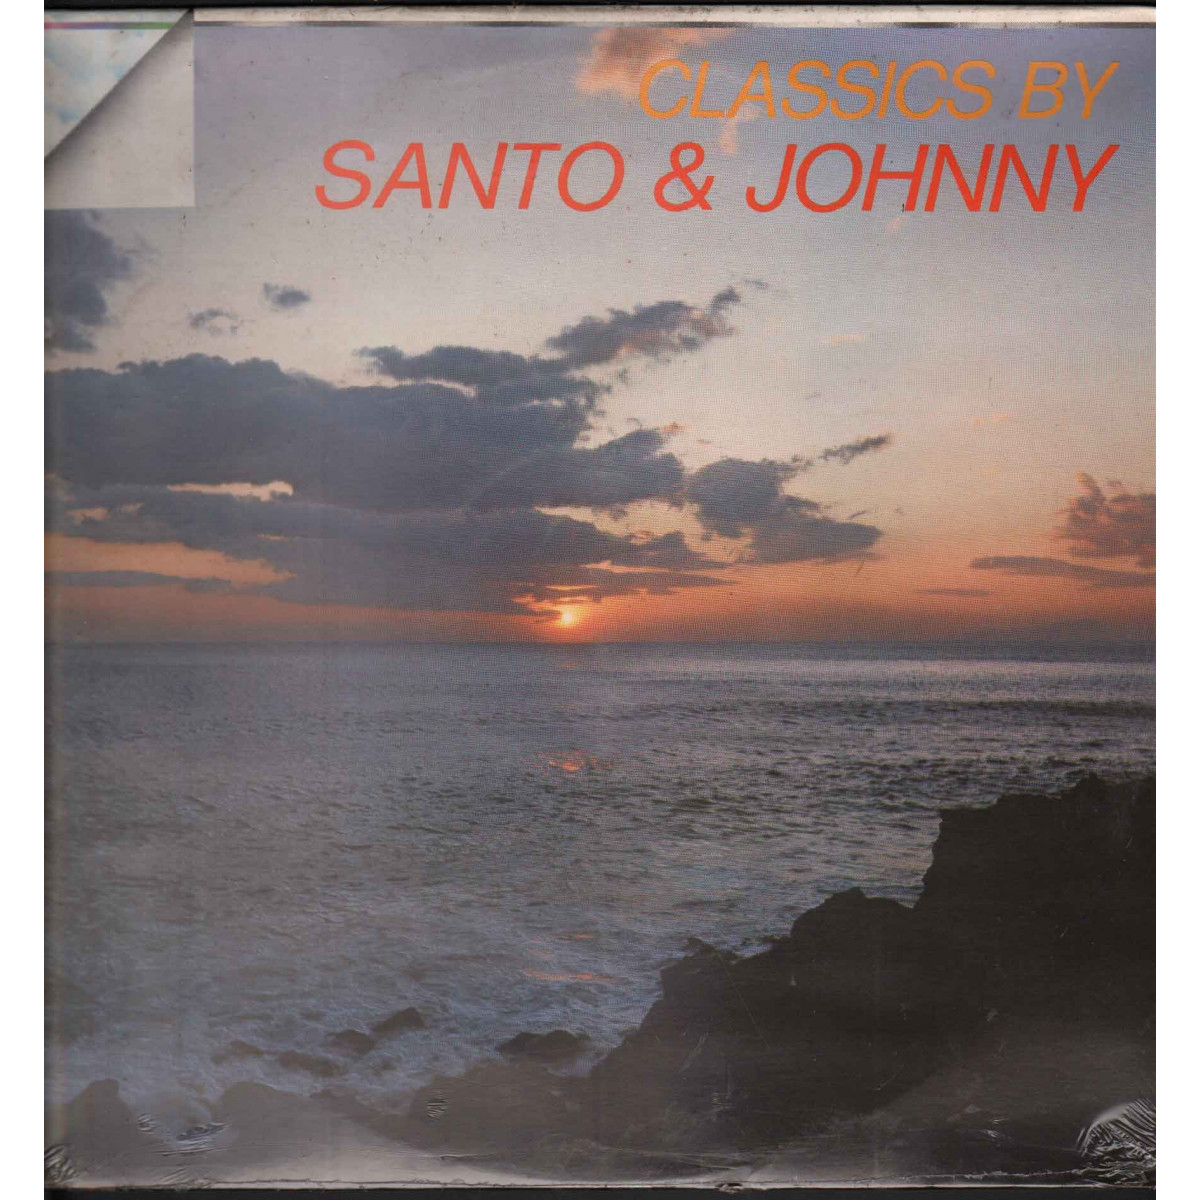 Santo & Johnny ‎- Classics By Santo & Johnny Ricordi ‎ORL 8487